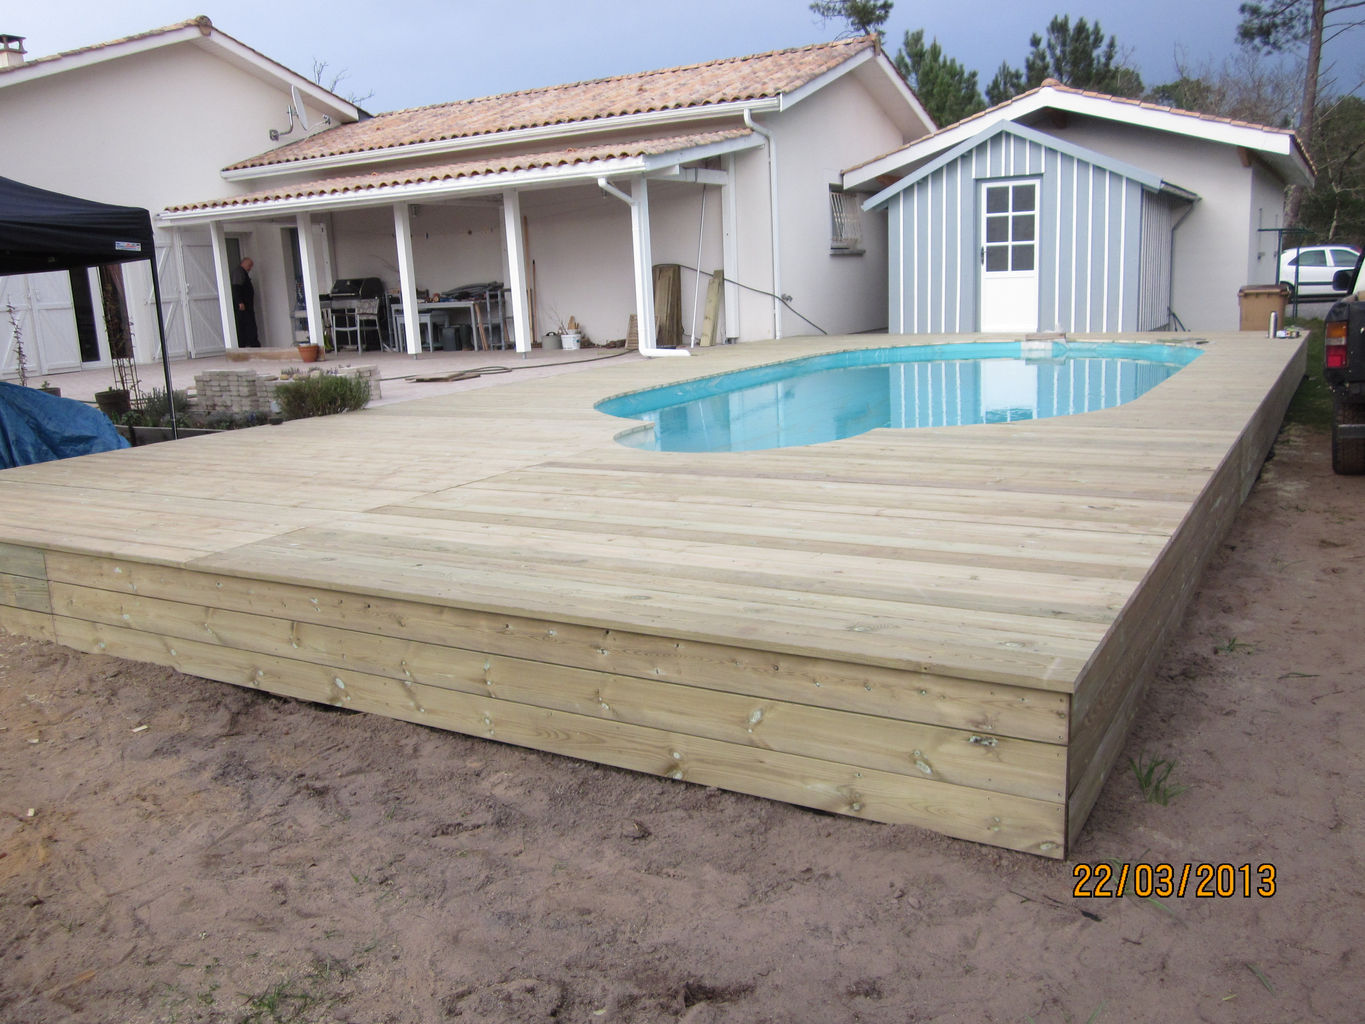 terrasse en bois pour piscine hors sol with terrasse en bois pour piscine hors sol awesome. Black Bedroom Furniture Sets. Home Design Ideas